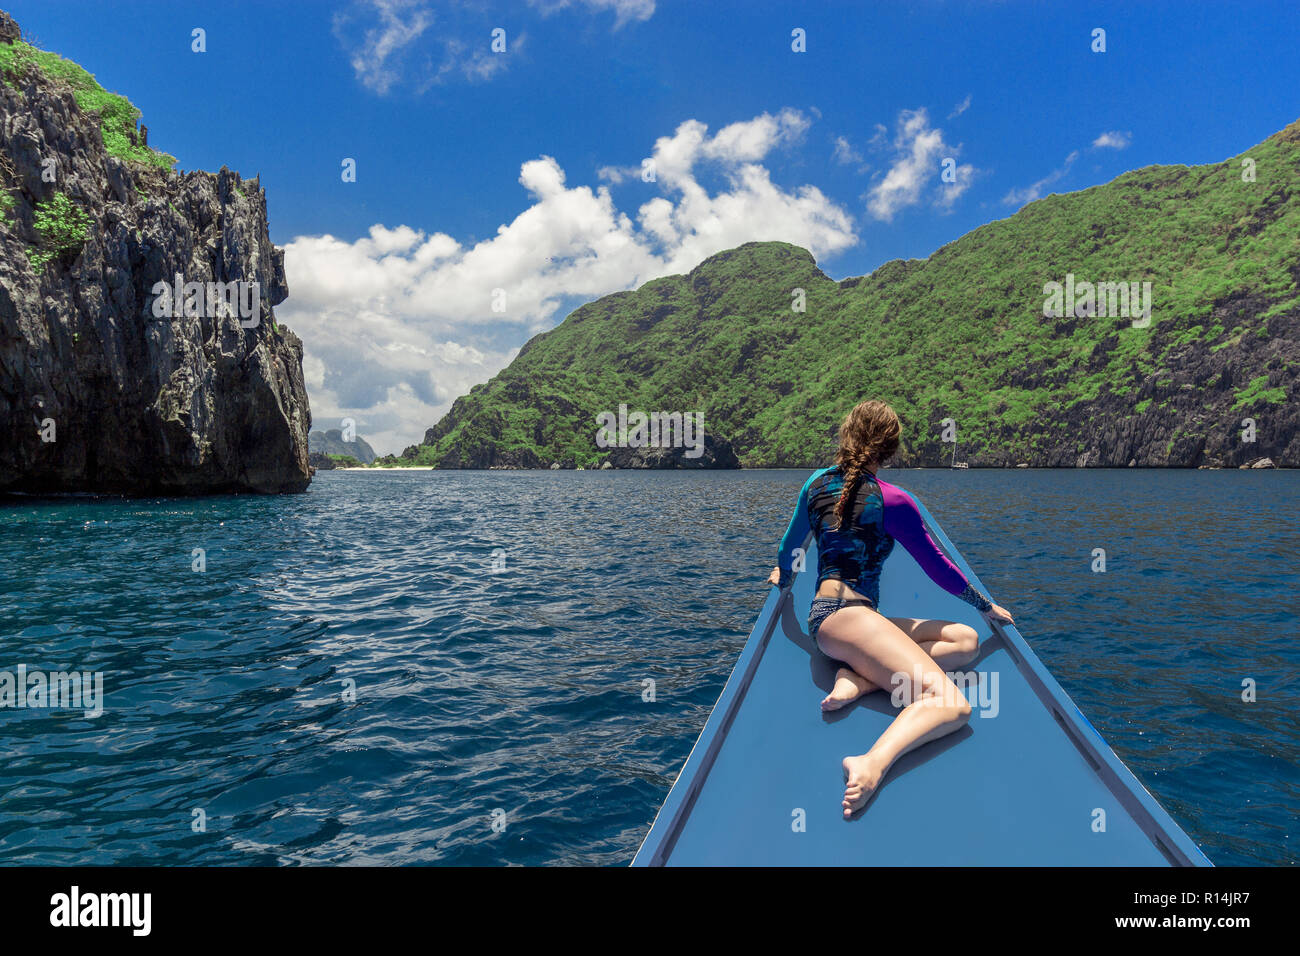 Back view of the young woman relaxing on the boat and looking at the island. Travelling tour in Asia: El Nido, Palawan, Philippines. - Stock Image